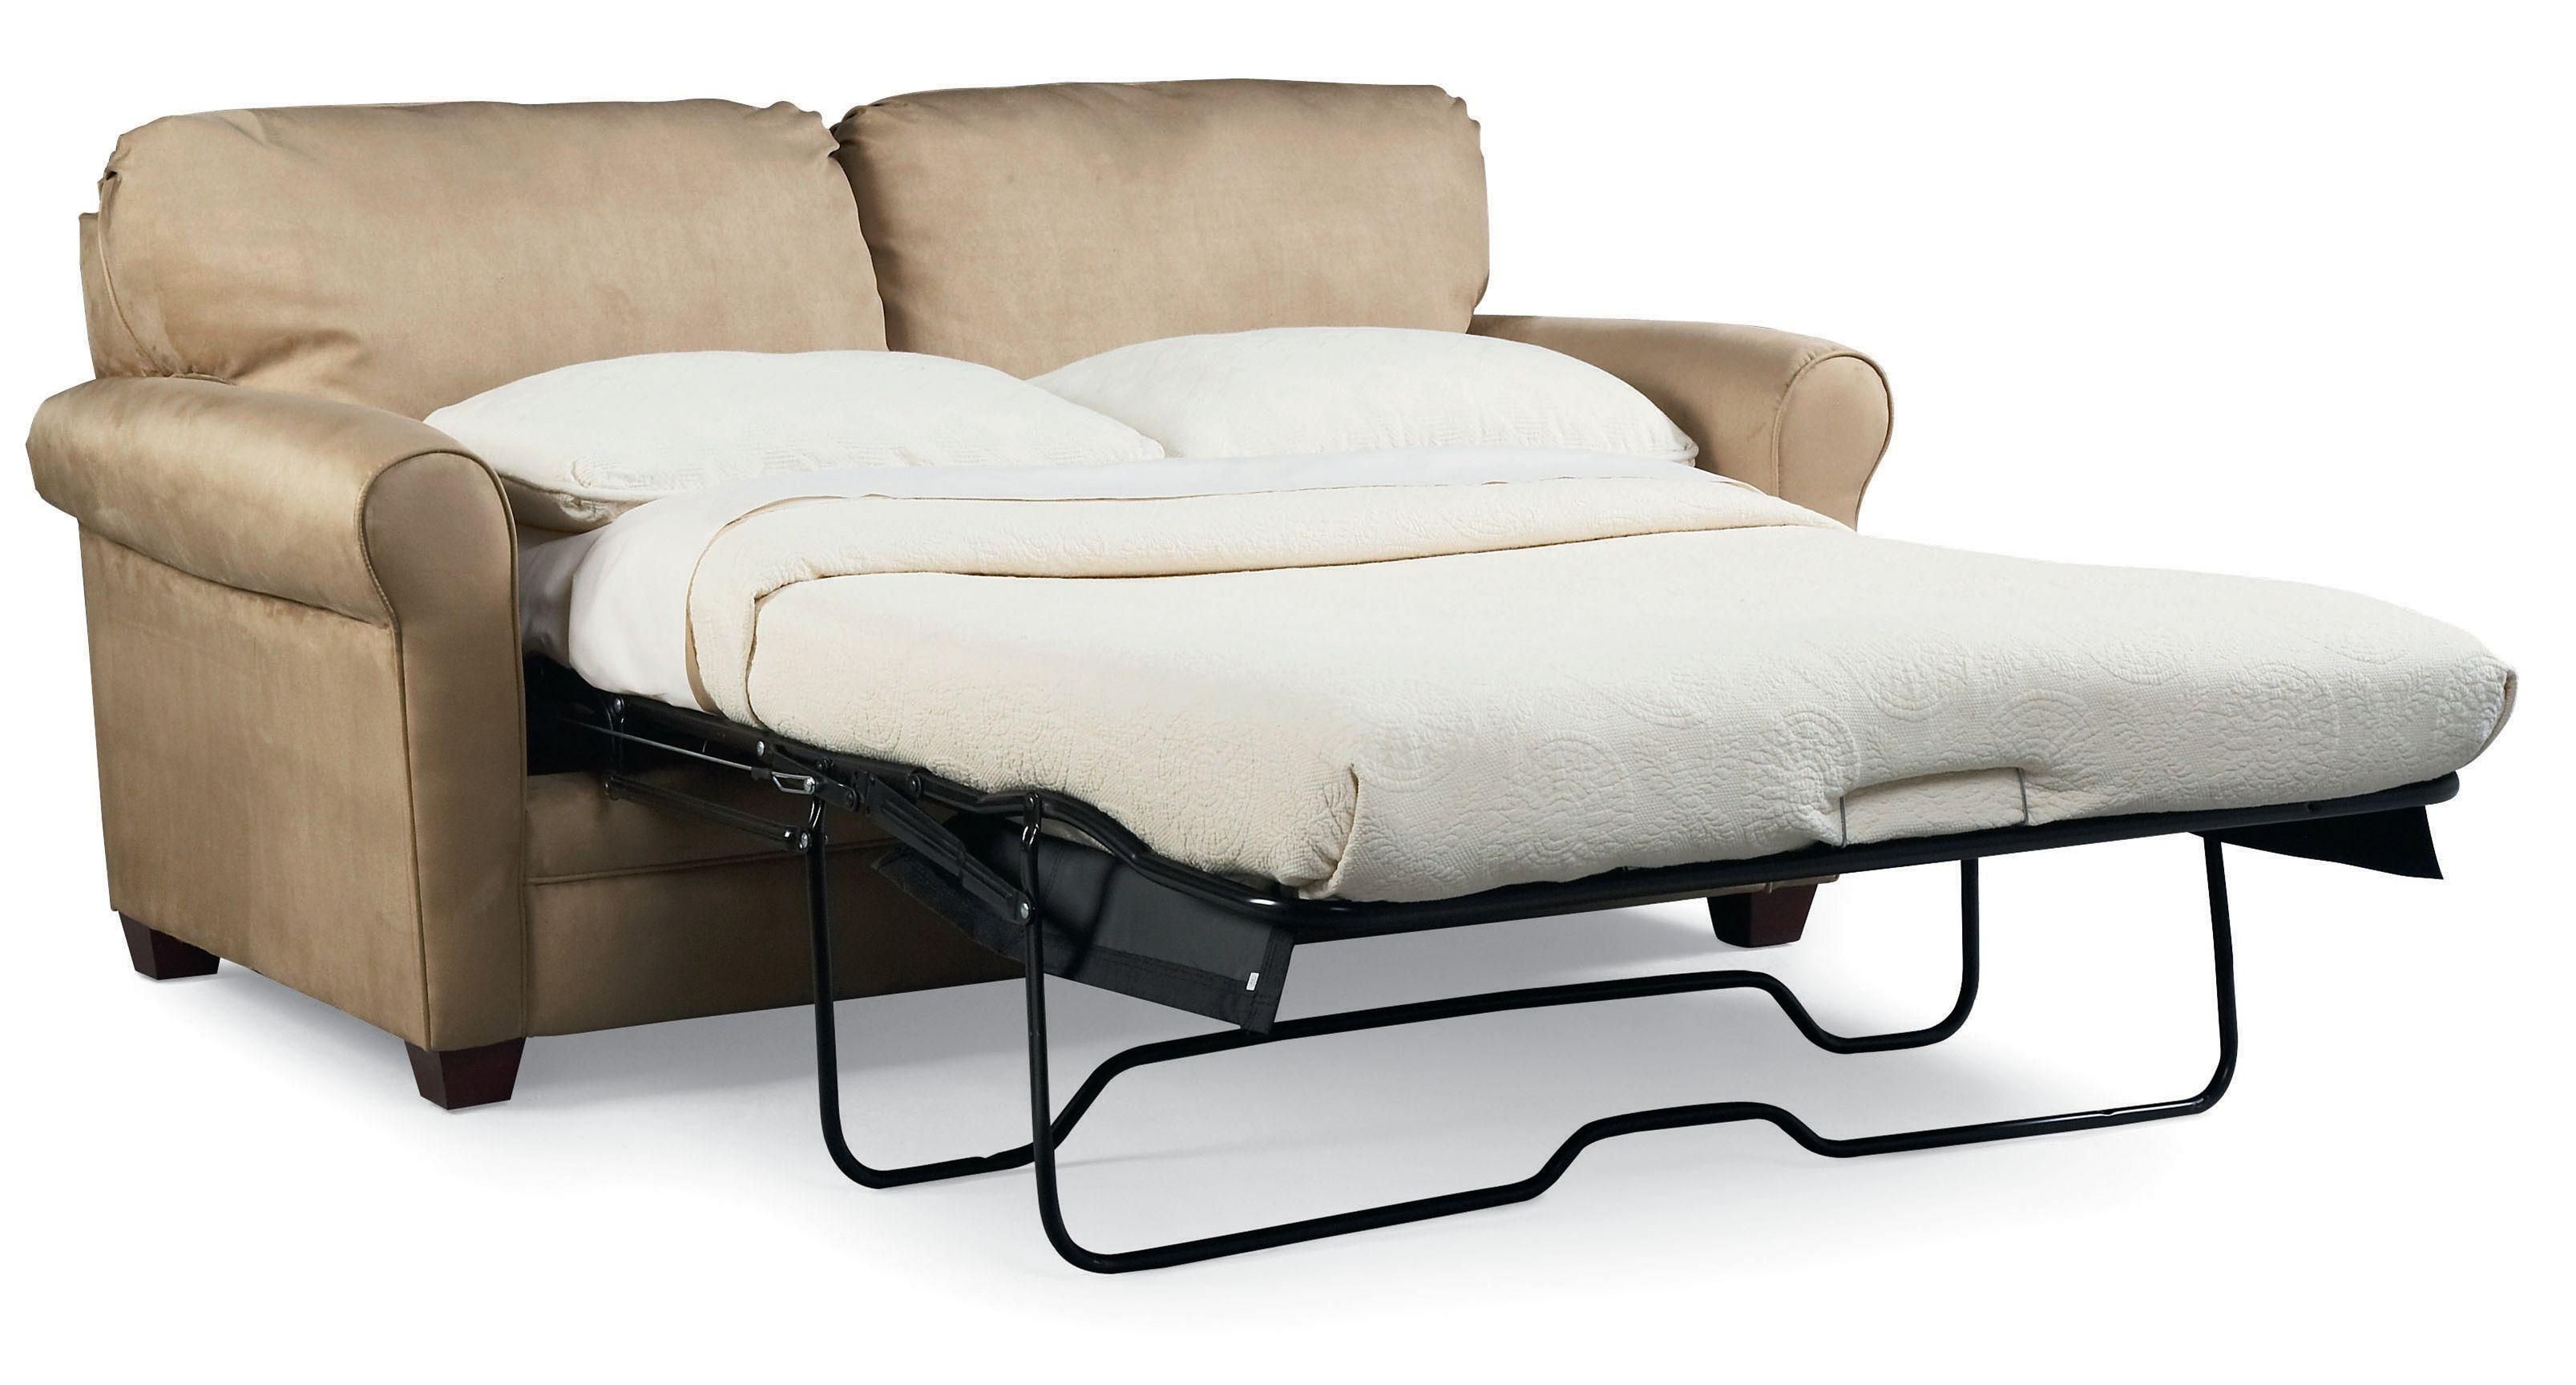 Queen Size Sofa Bed Frame | Tehranmix Decoration in Full Size Sofa Beds